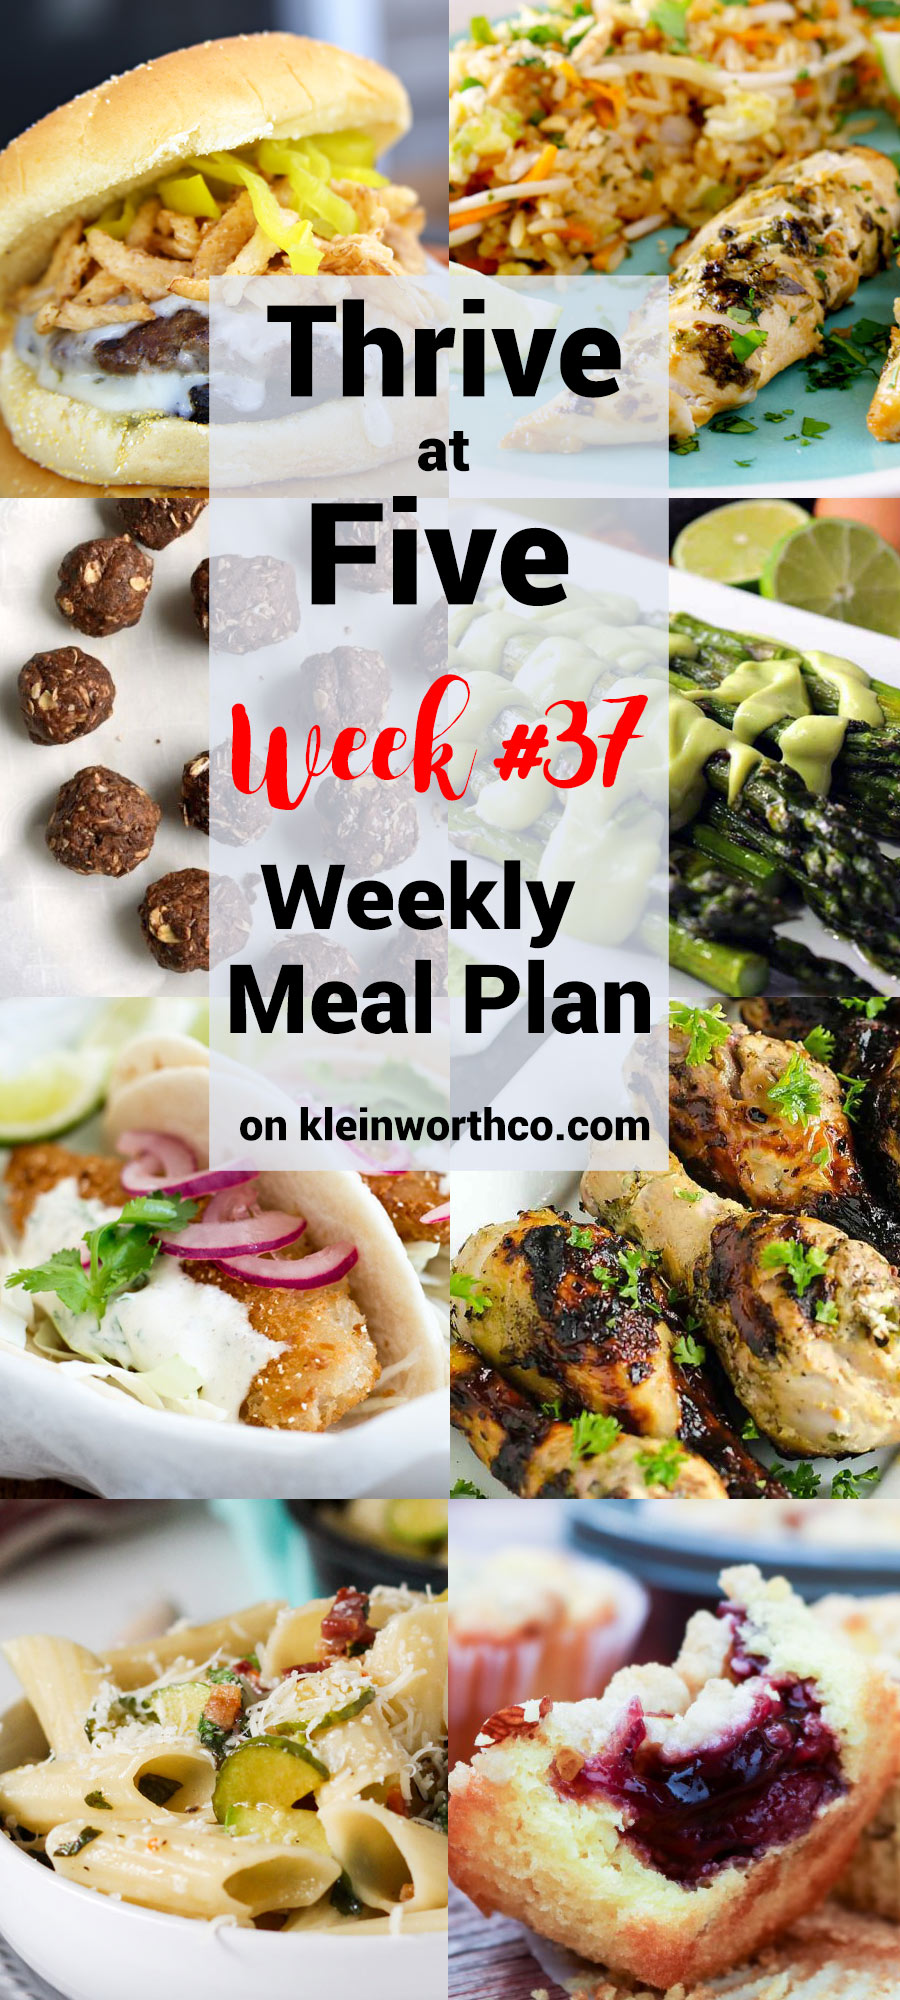 Thrive at Five Meal Plan Week 37